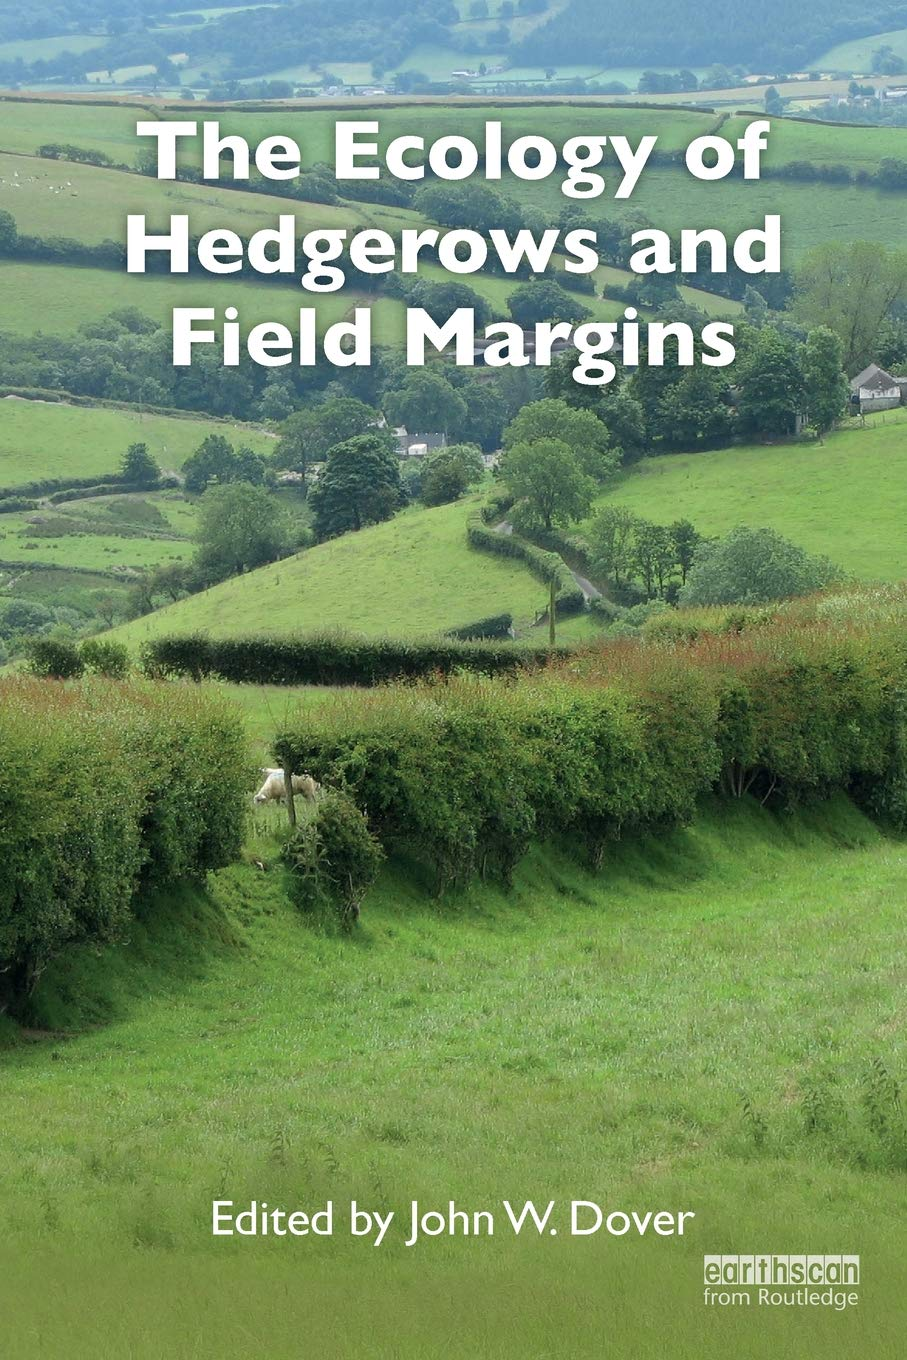 The Ecology of Hedgerows and Field Margins